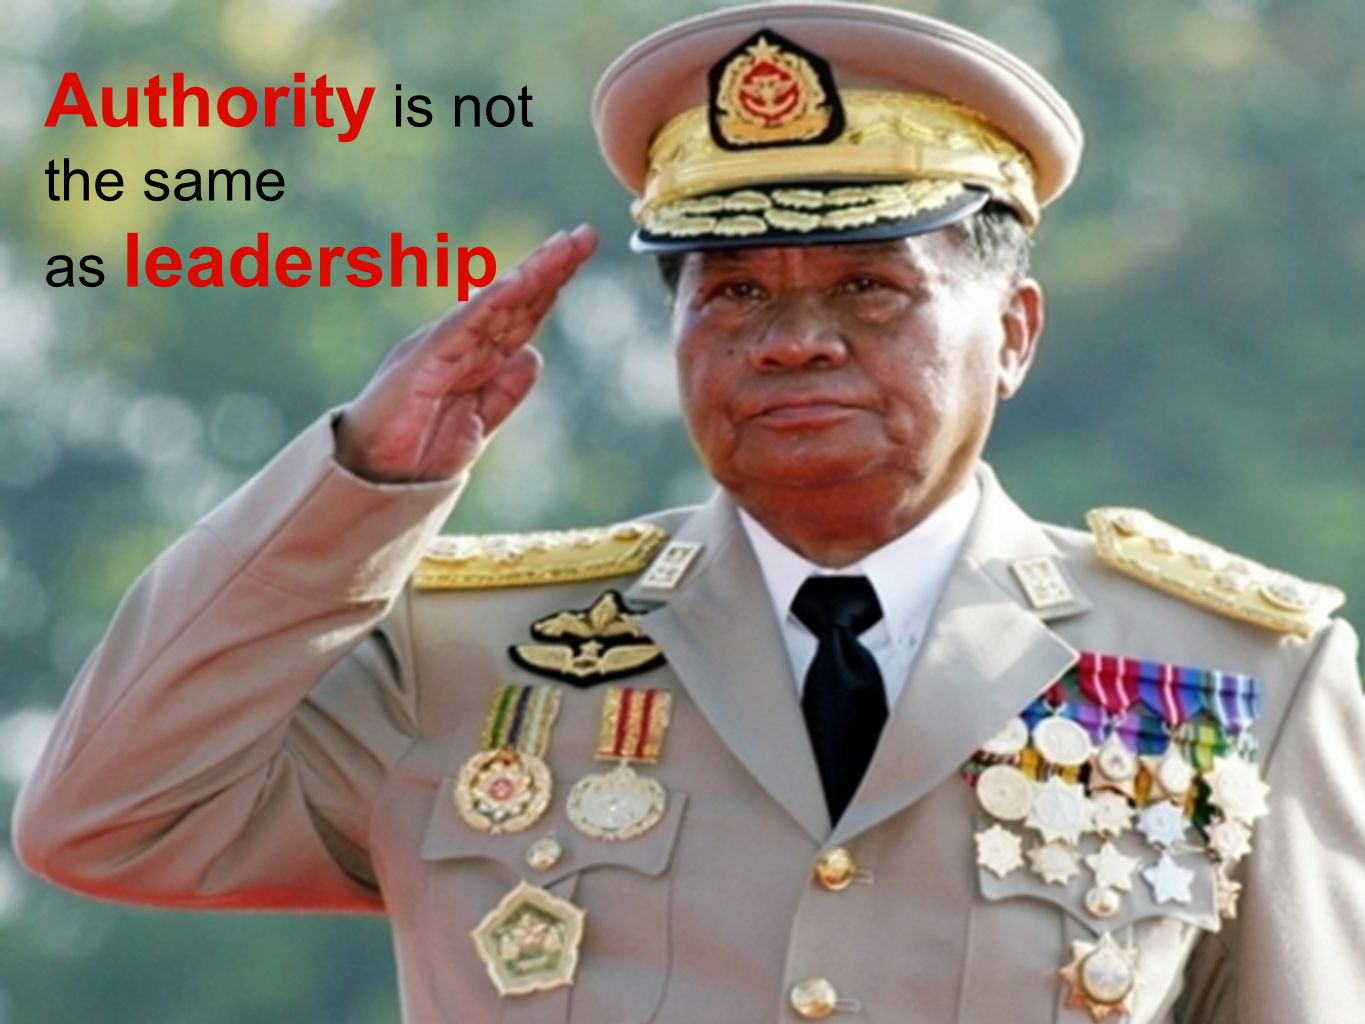 Authority is not the same as leadership